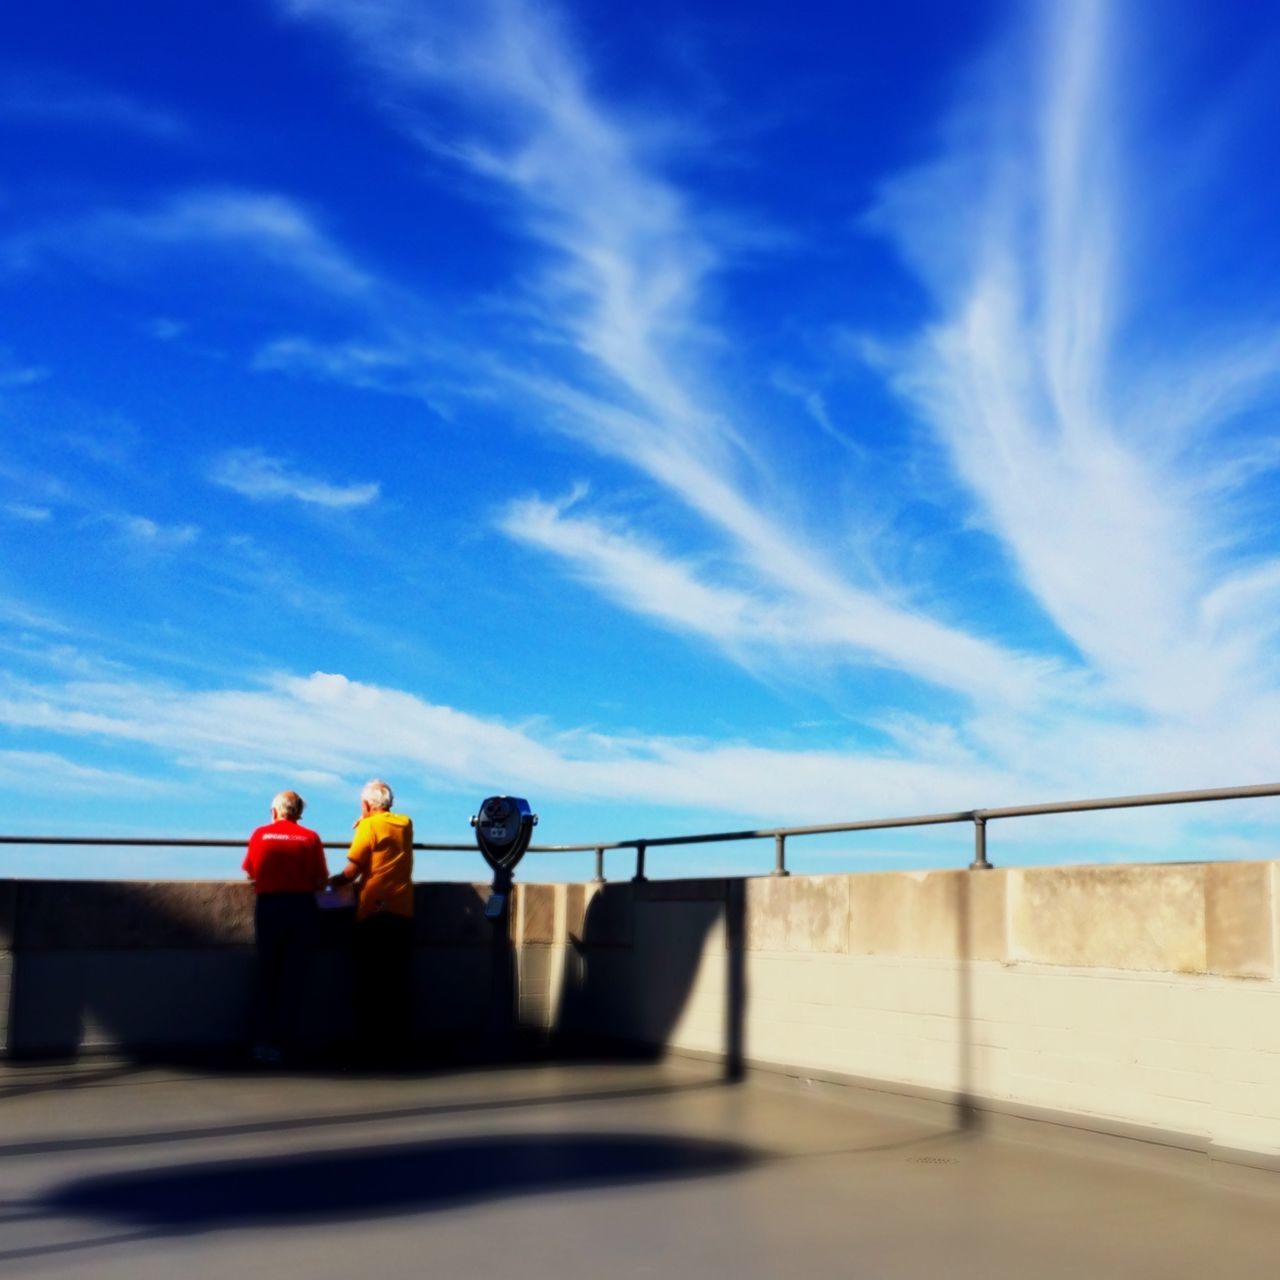 Mobilephotography IPhone IPhoneography Cincinnati Clouds And Sky Carew Tower IPSWeather